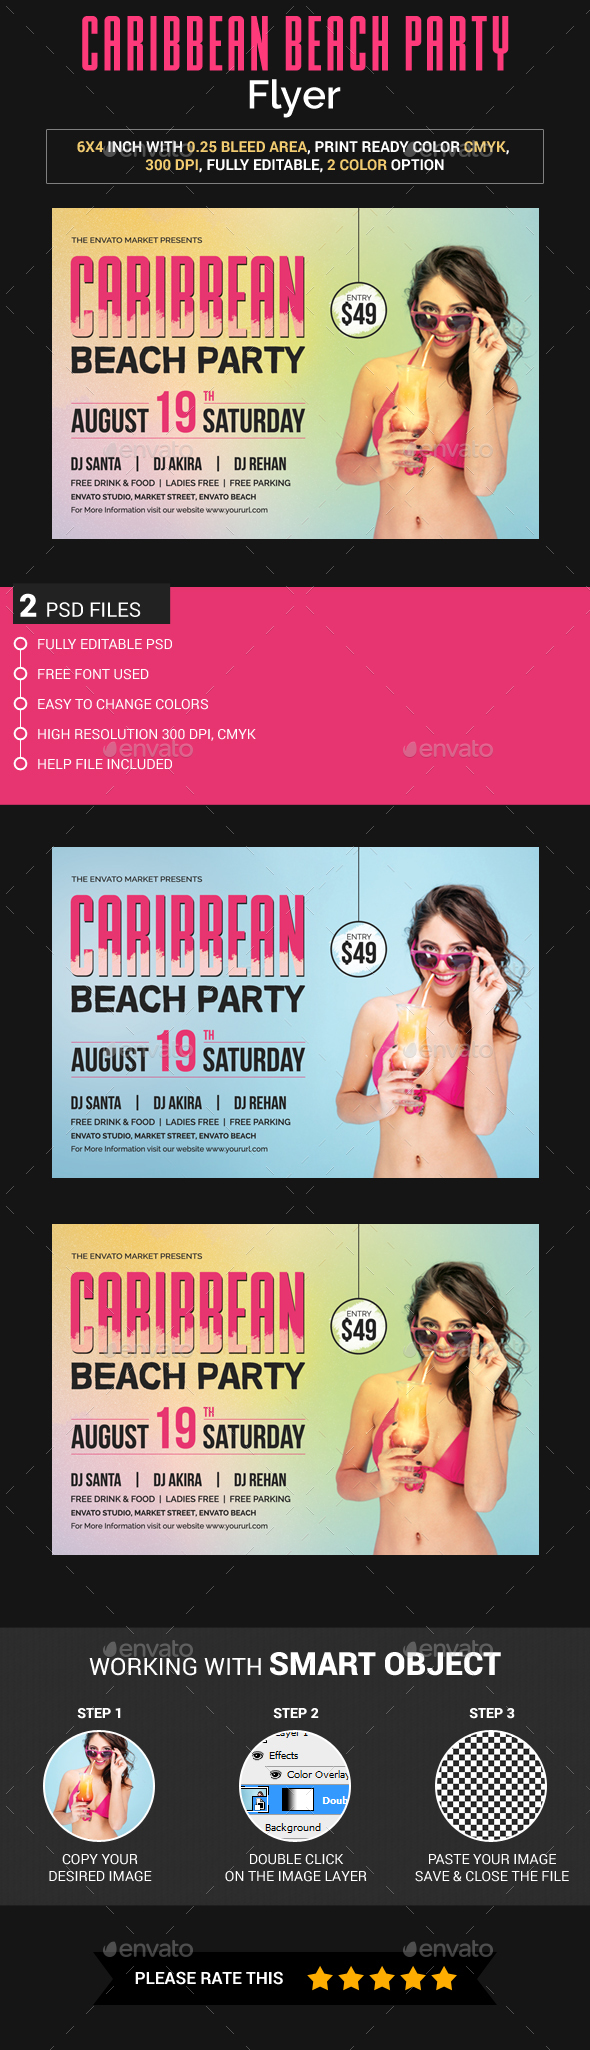 Caribbean Beach Party Flyer - Clubs & Parties Events